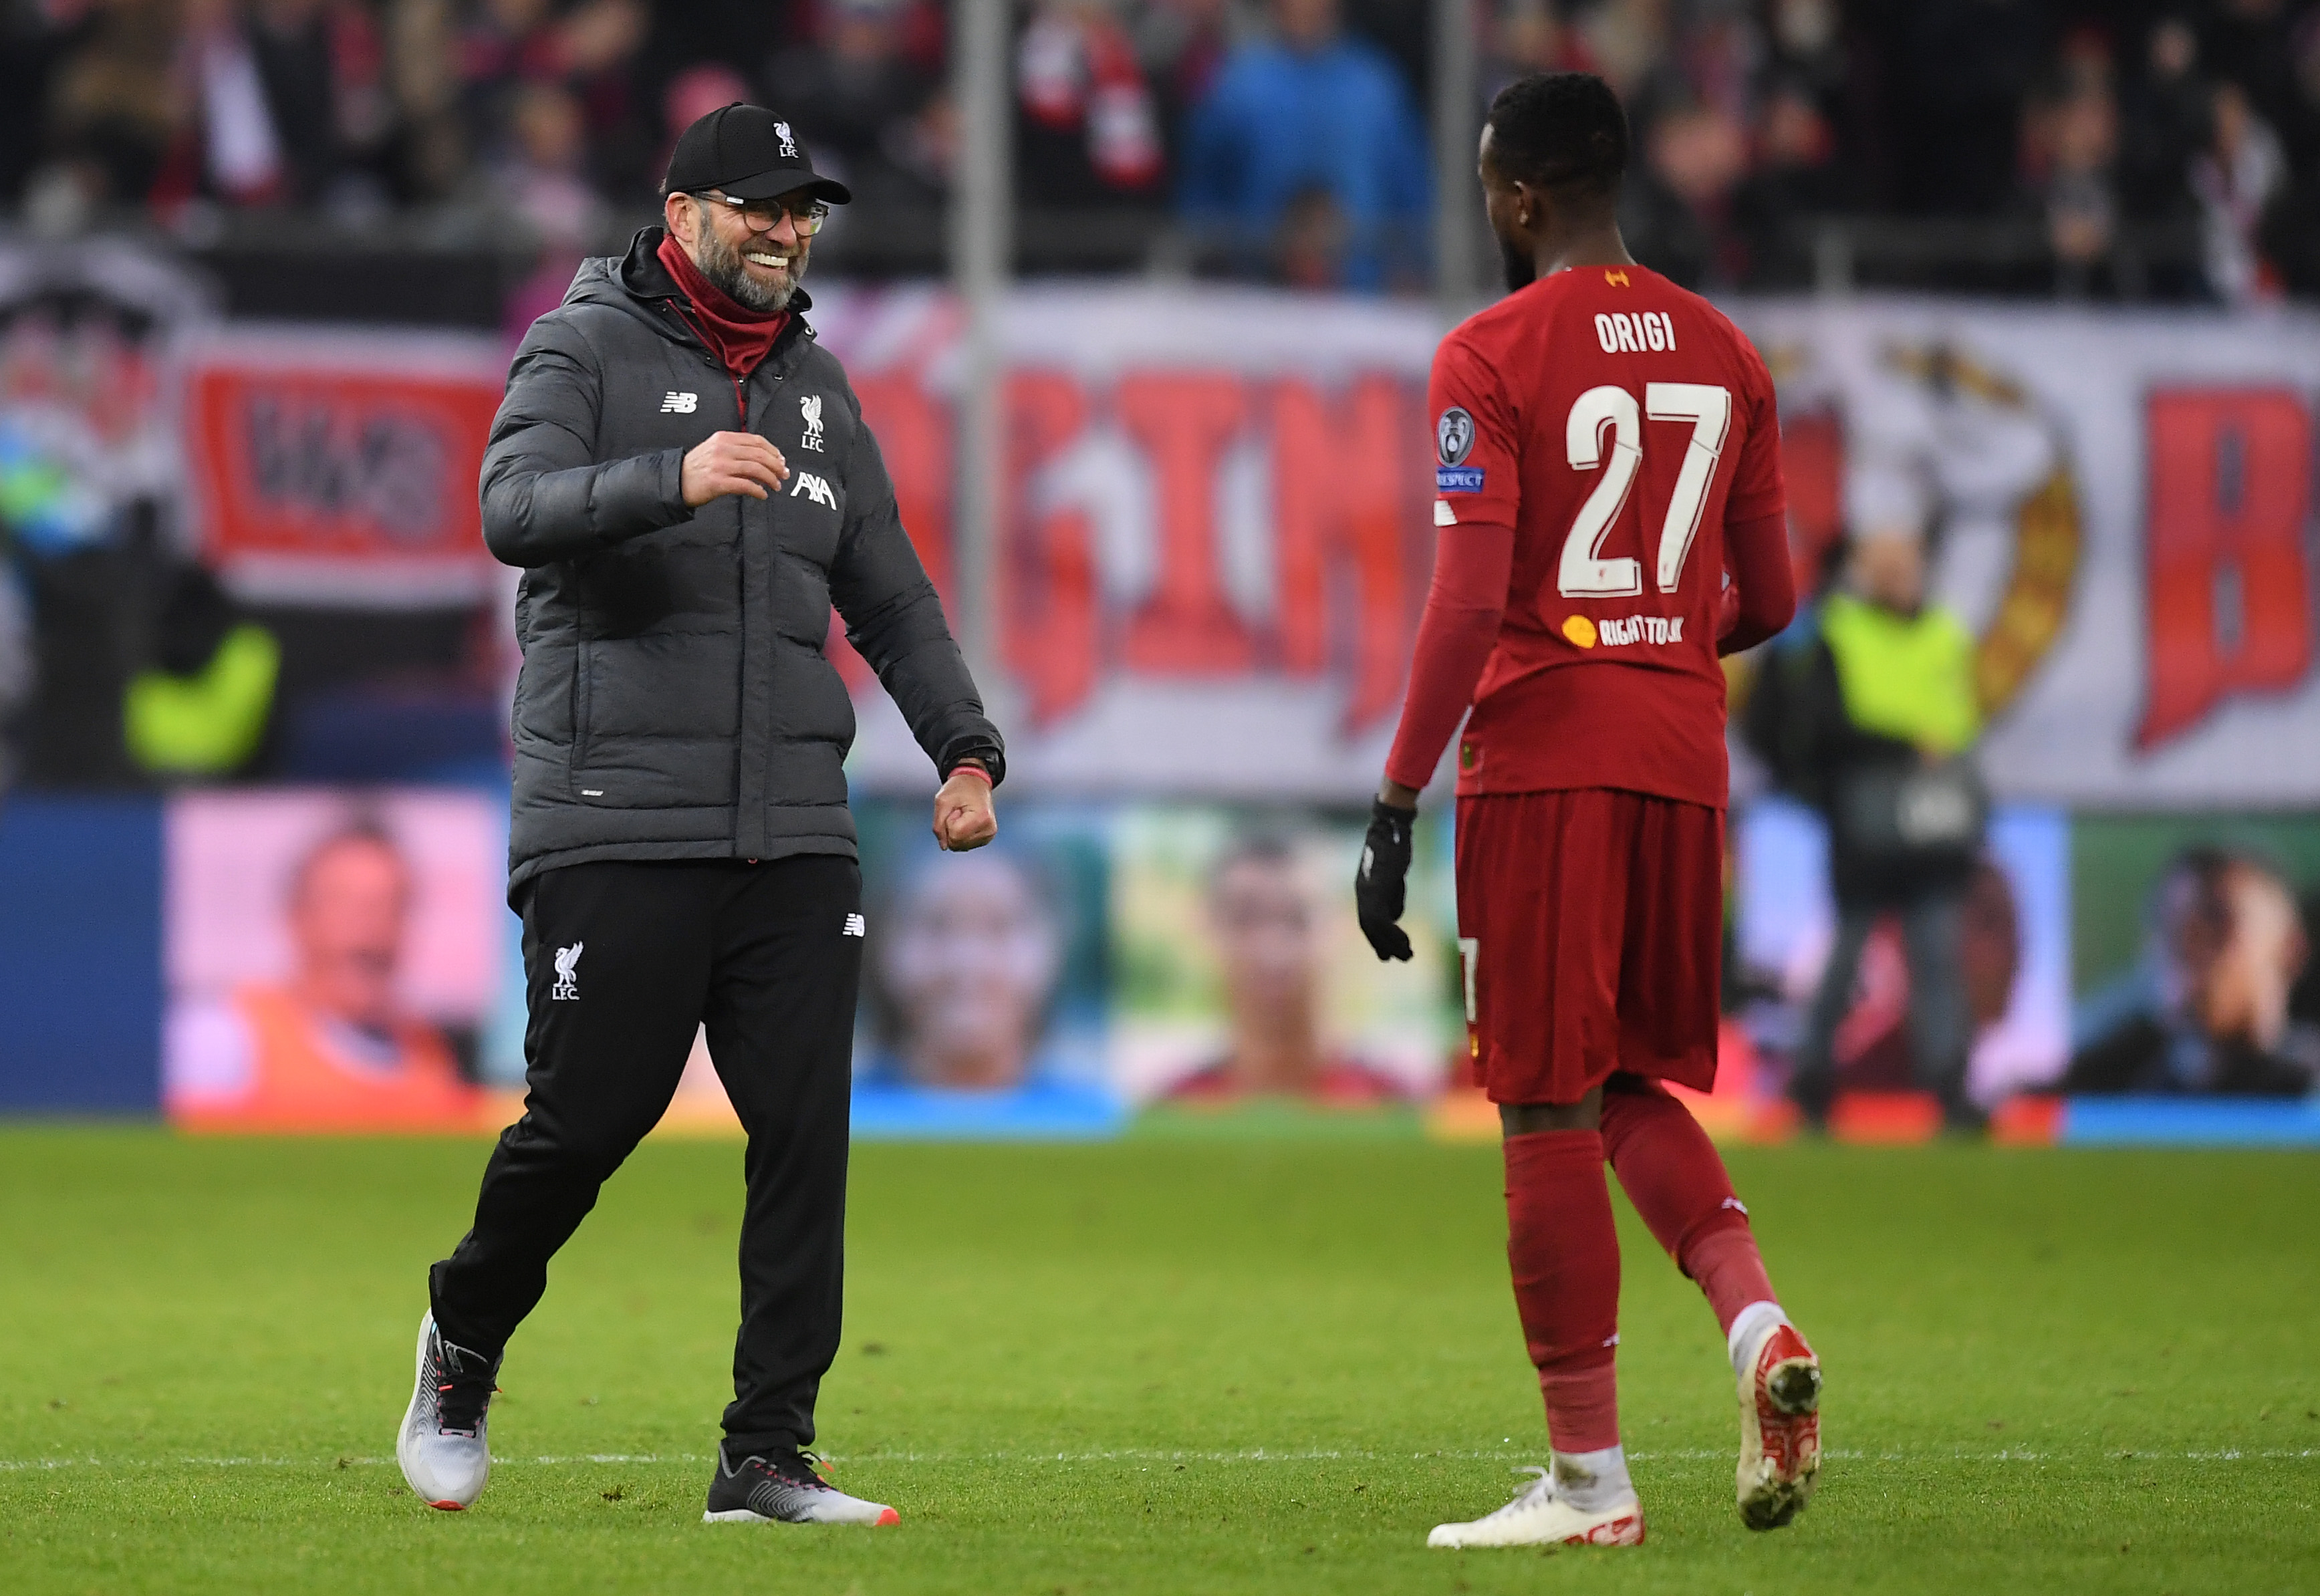 Klopp ready to part ways with Origi? (Photo by Michael Regan/Getty Images)